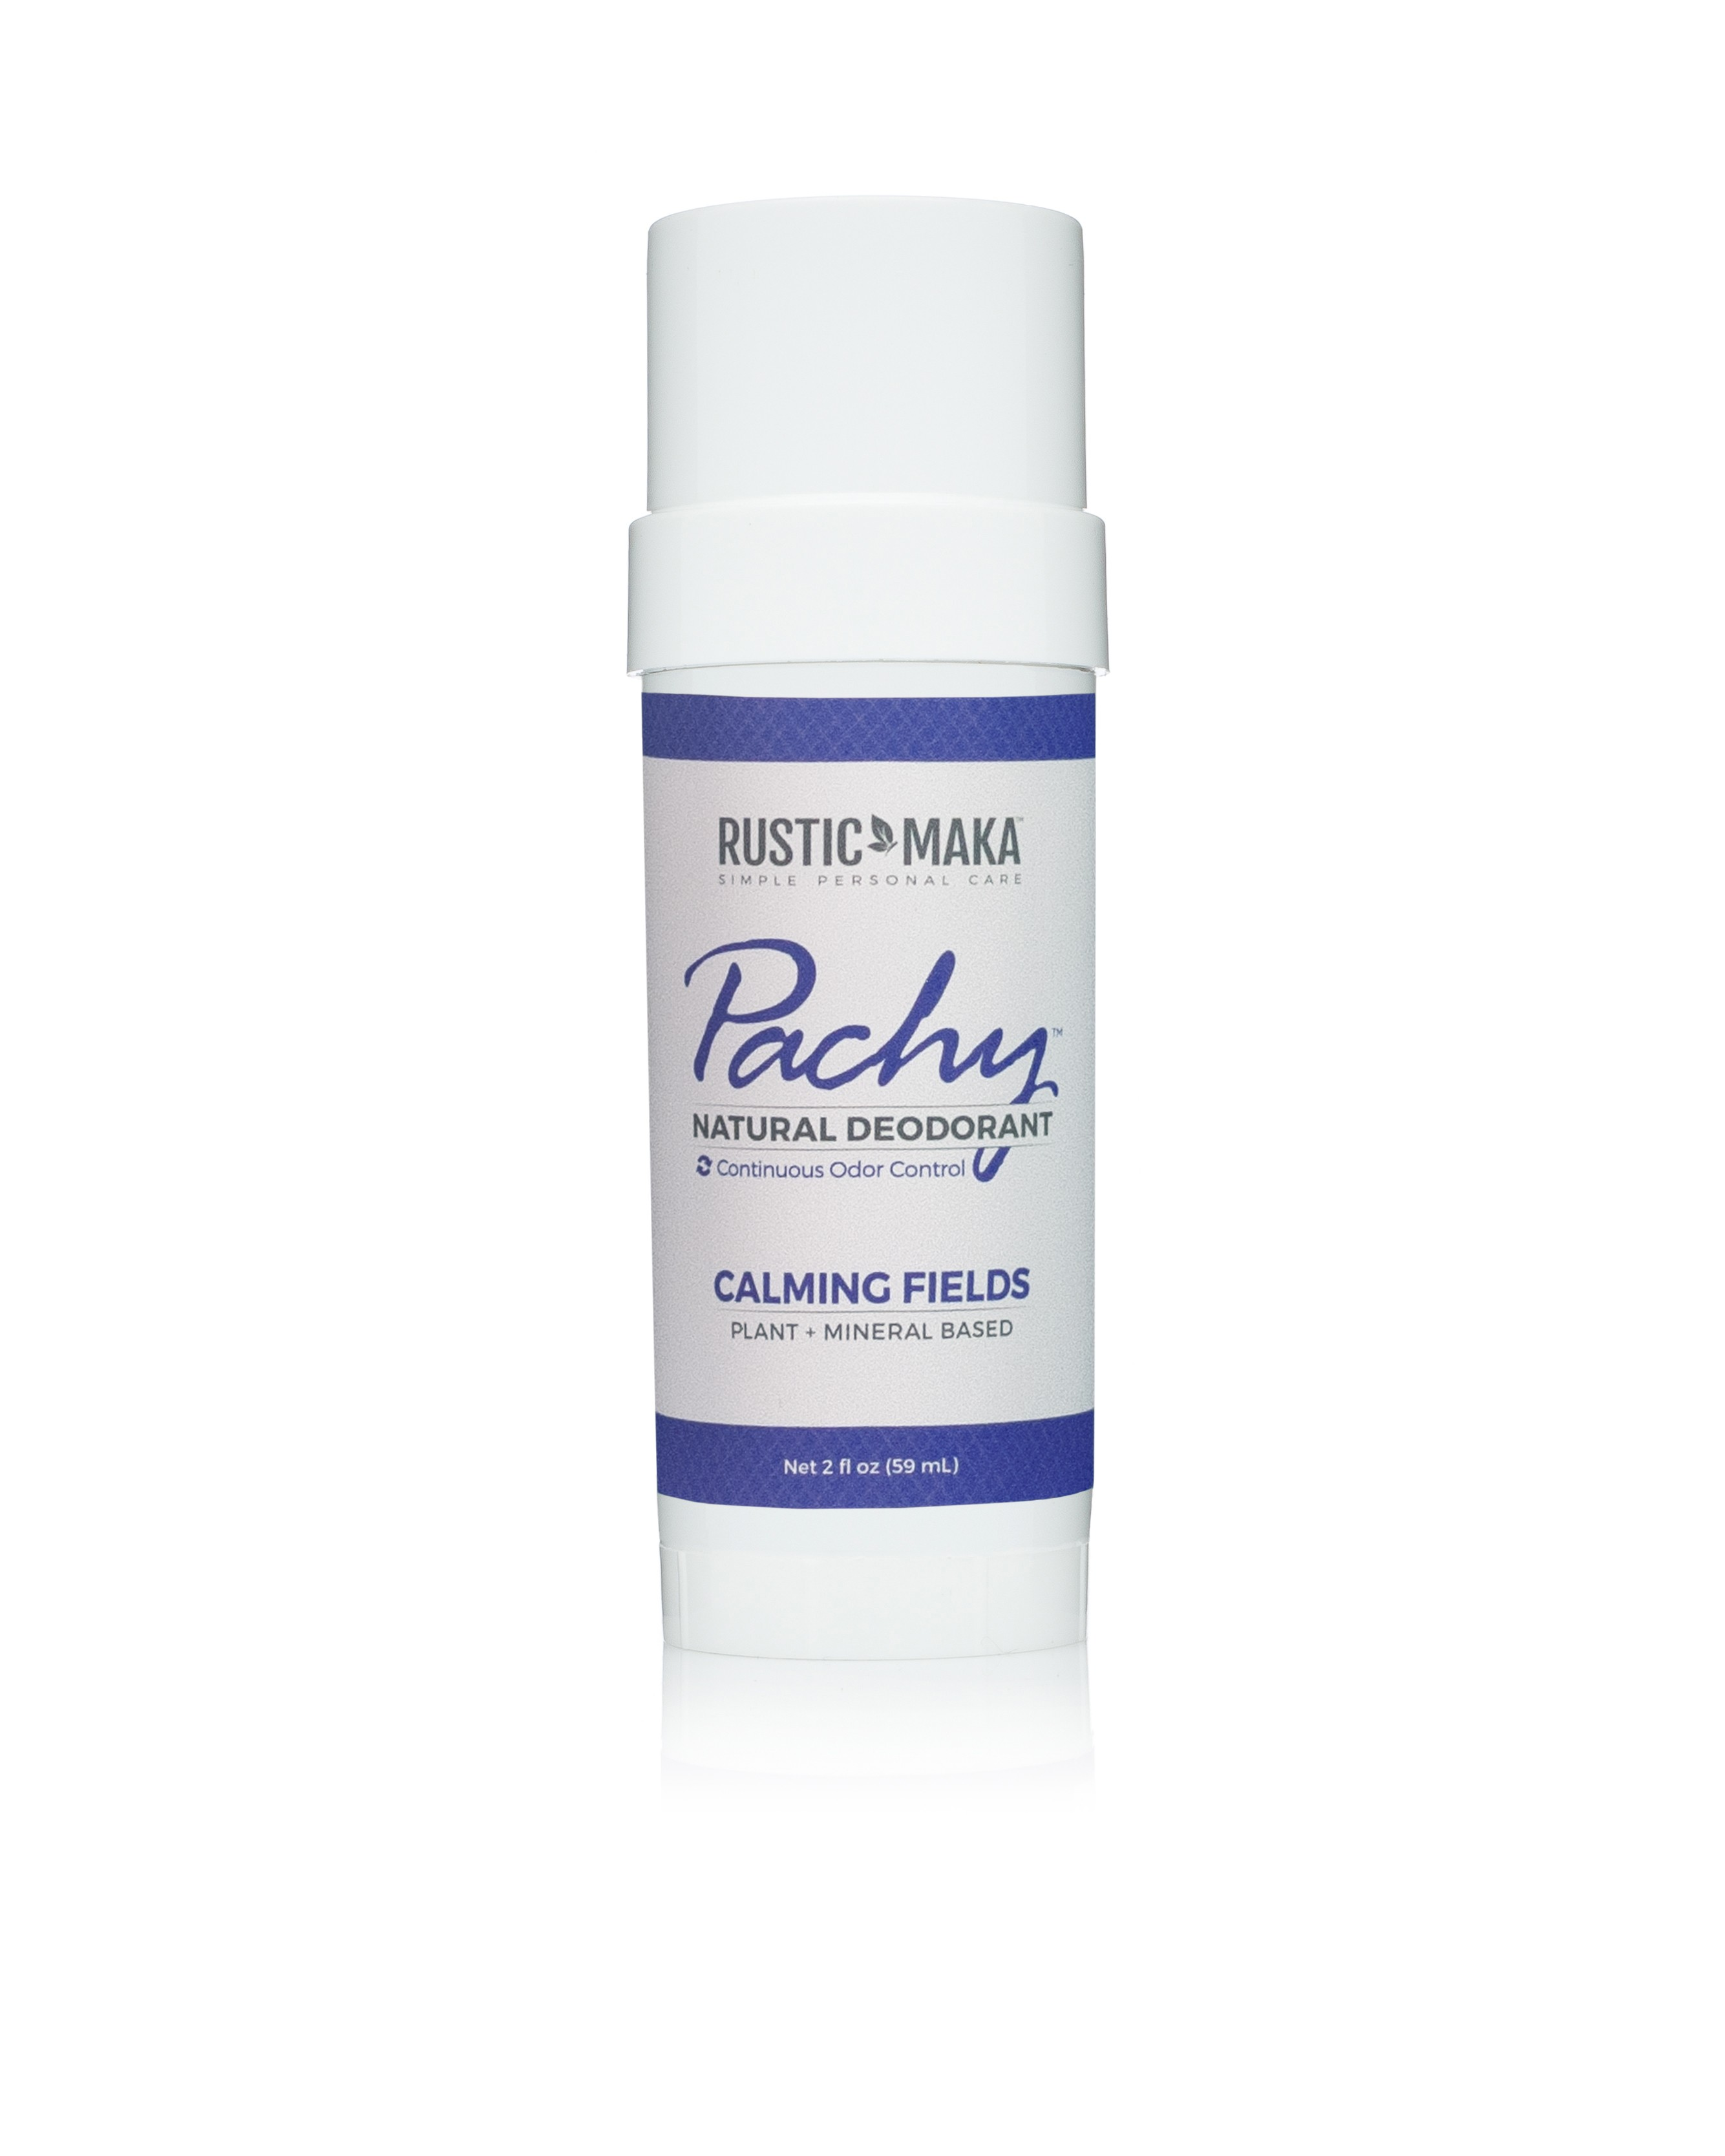 Rustic MAKA Pachy Natural Deodorant Calming Fields - Full Size